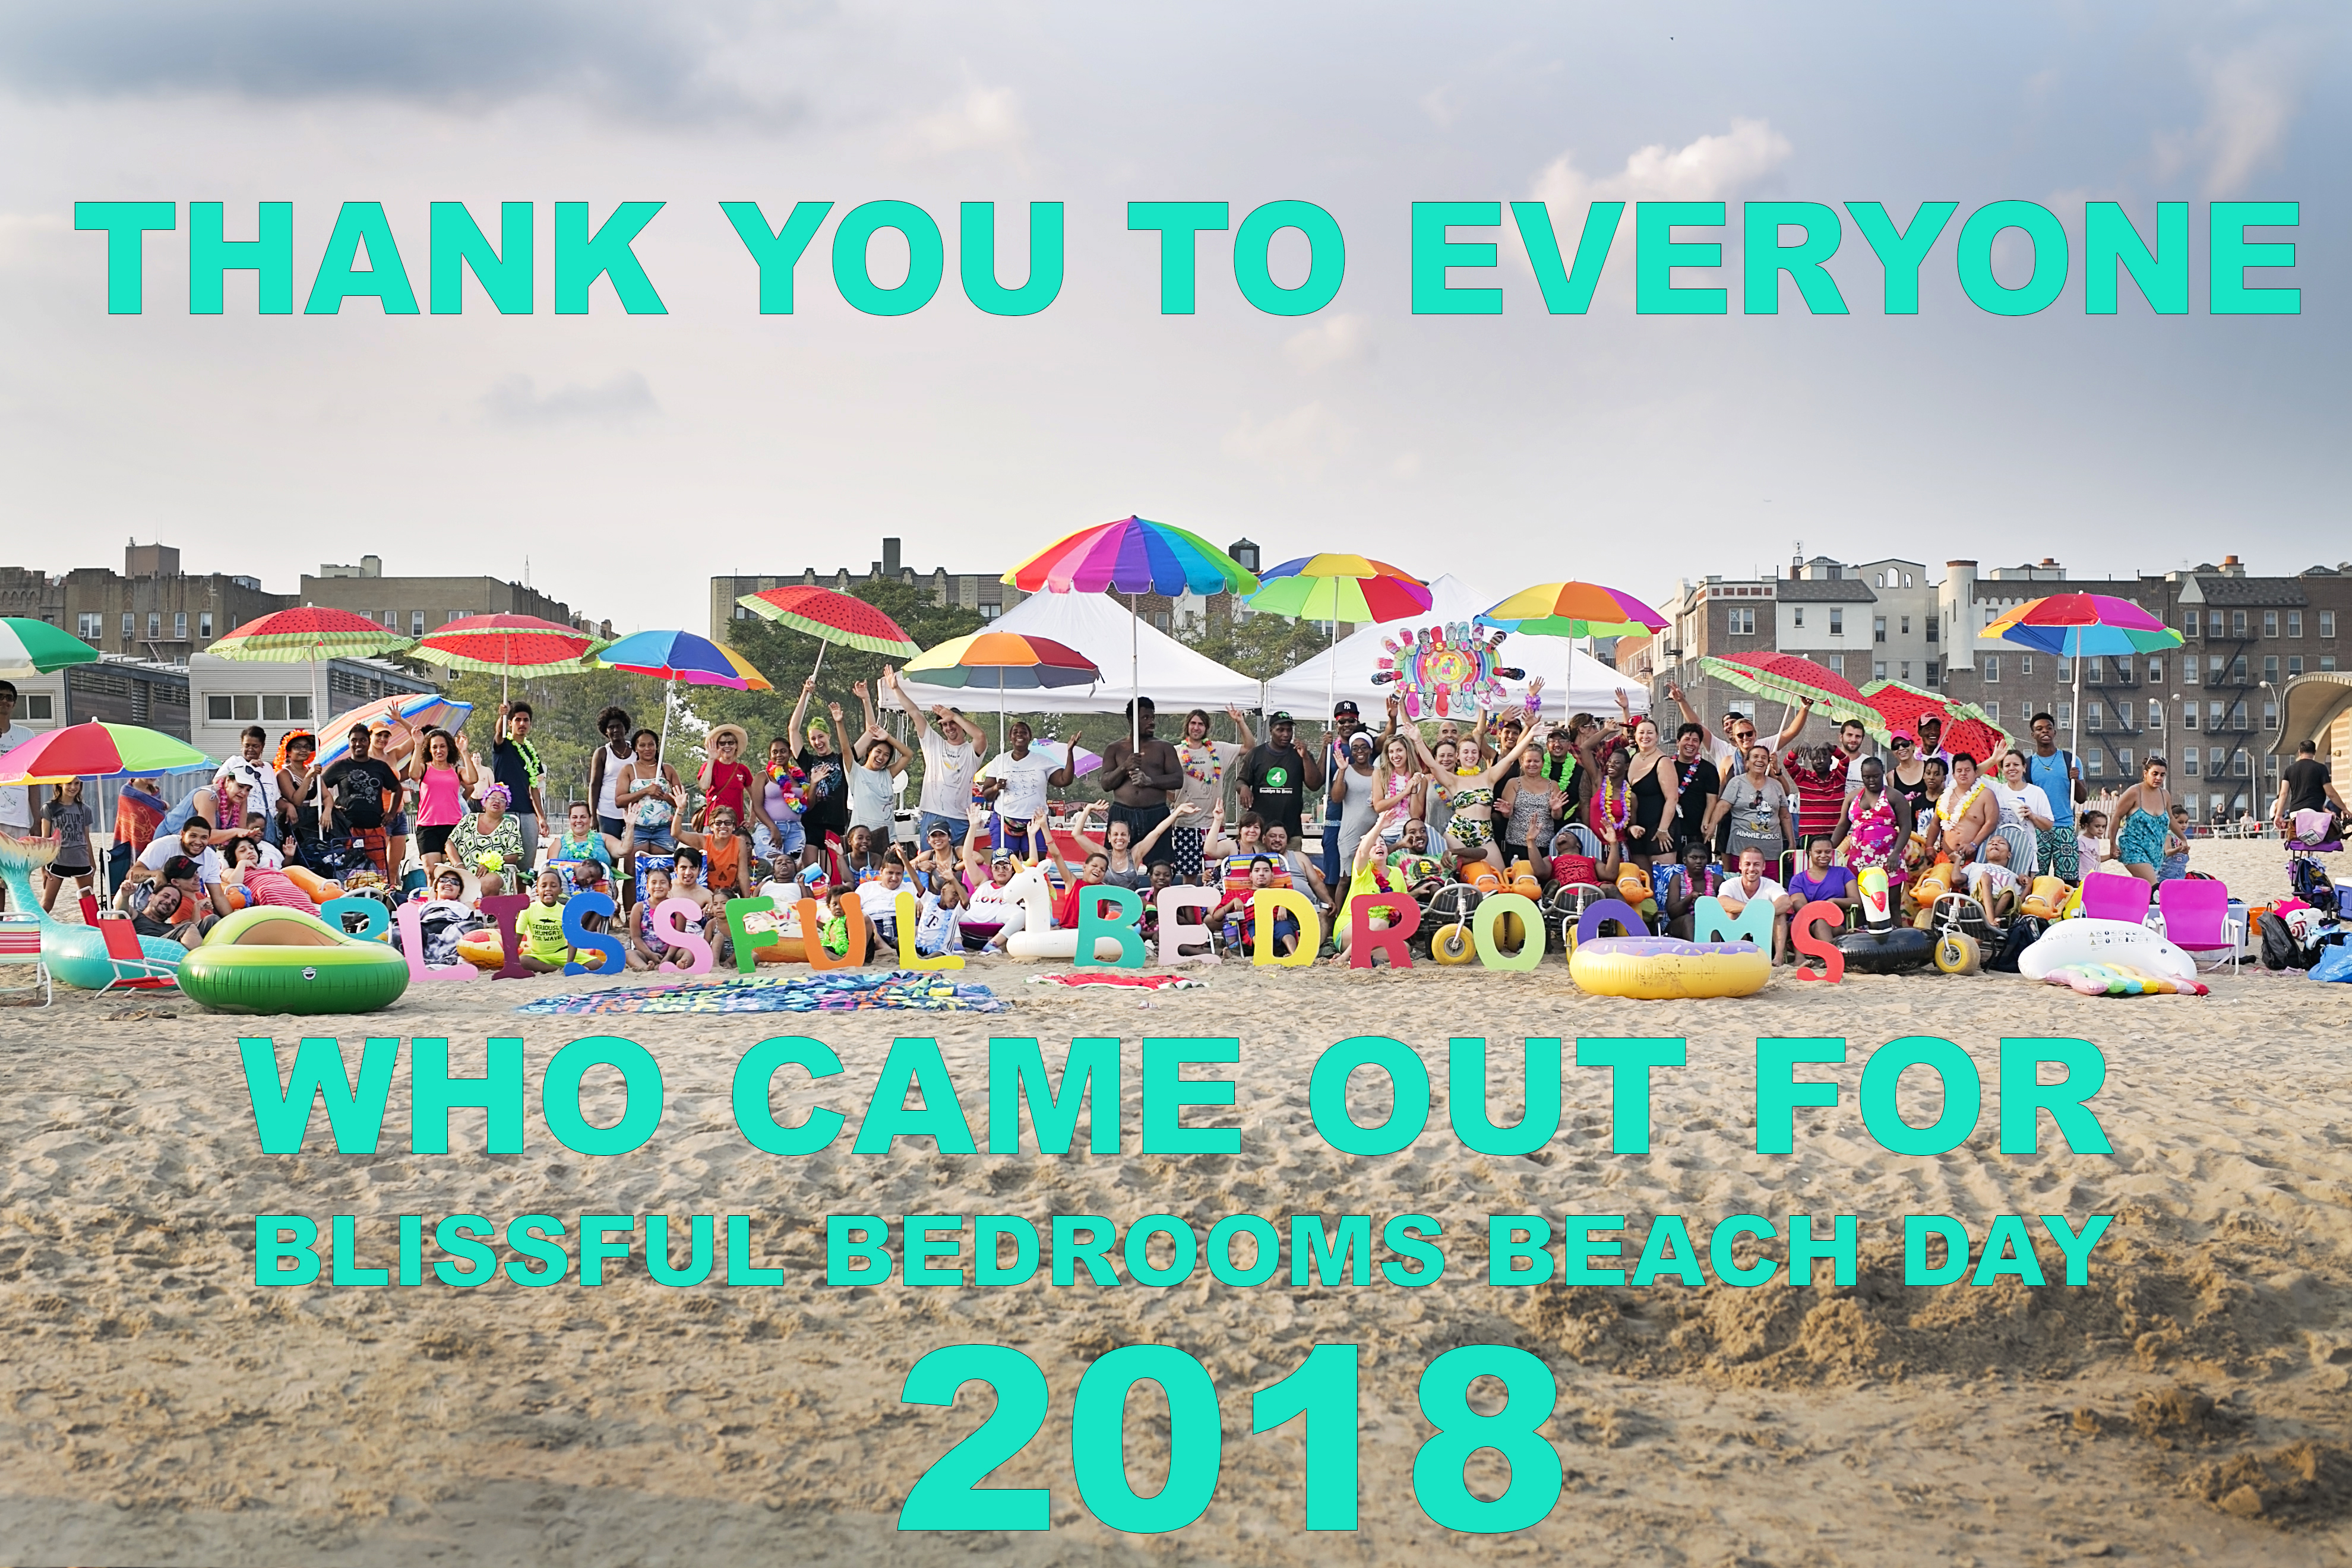 THANK YOU FOR COMING GRAPHIC - BEACH DAY 2018